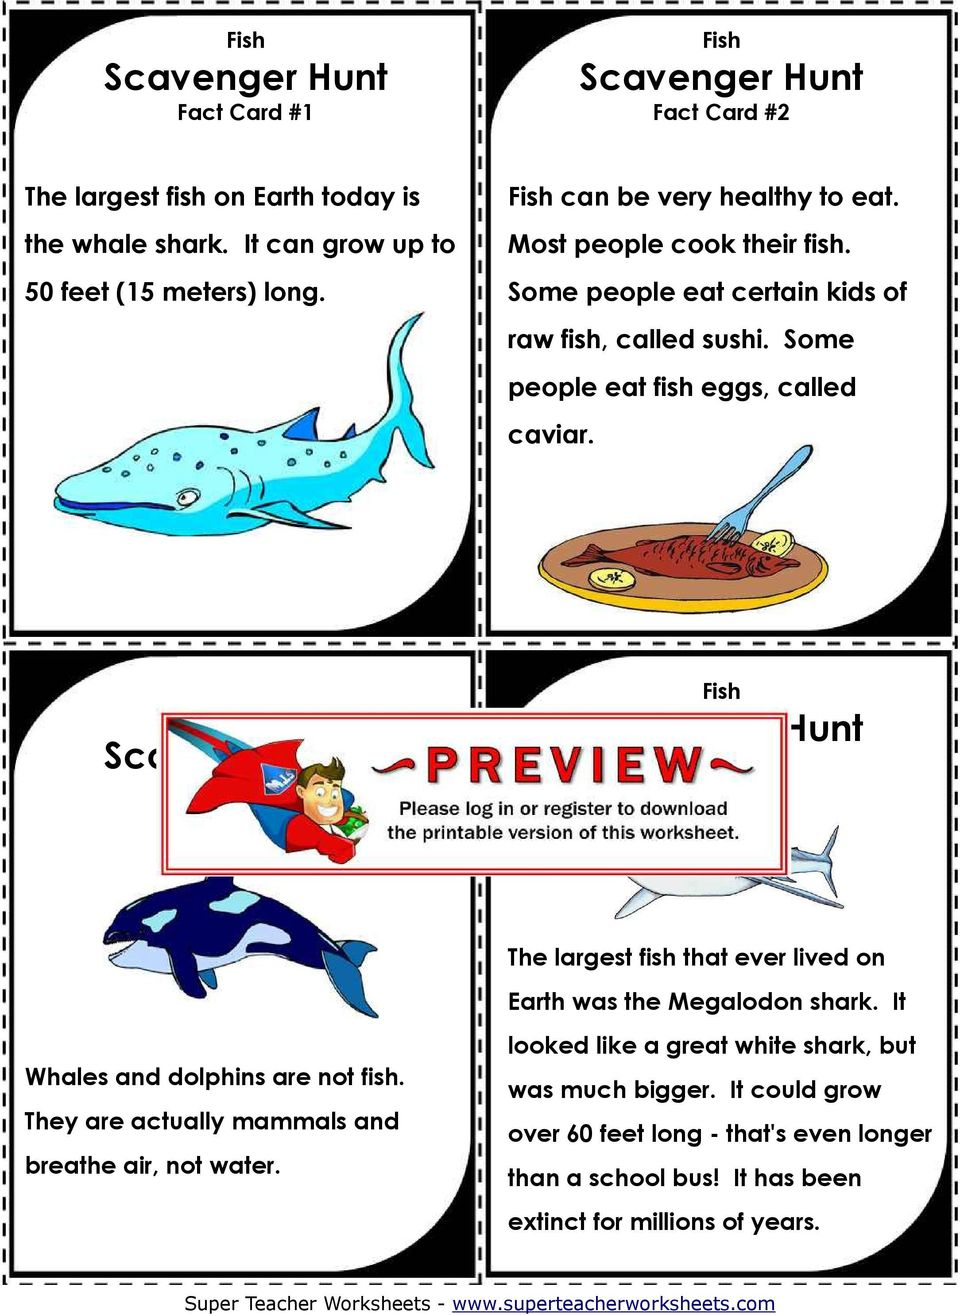 Fact Card #3 Fact Card #4 The largest fish that ever lived on Earth was the Megalodon shark. It Whales and dolphins are not fish.